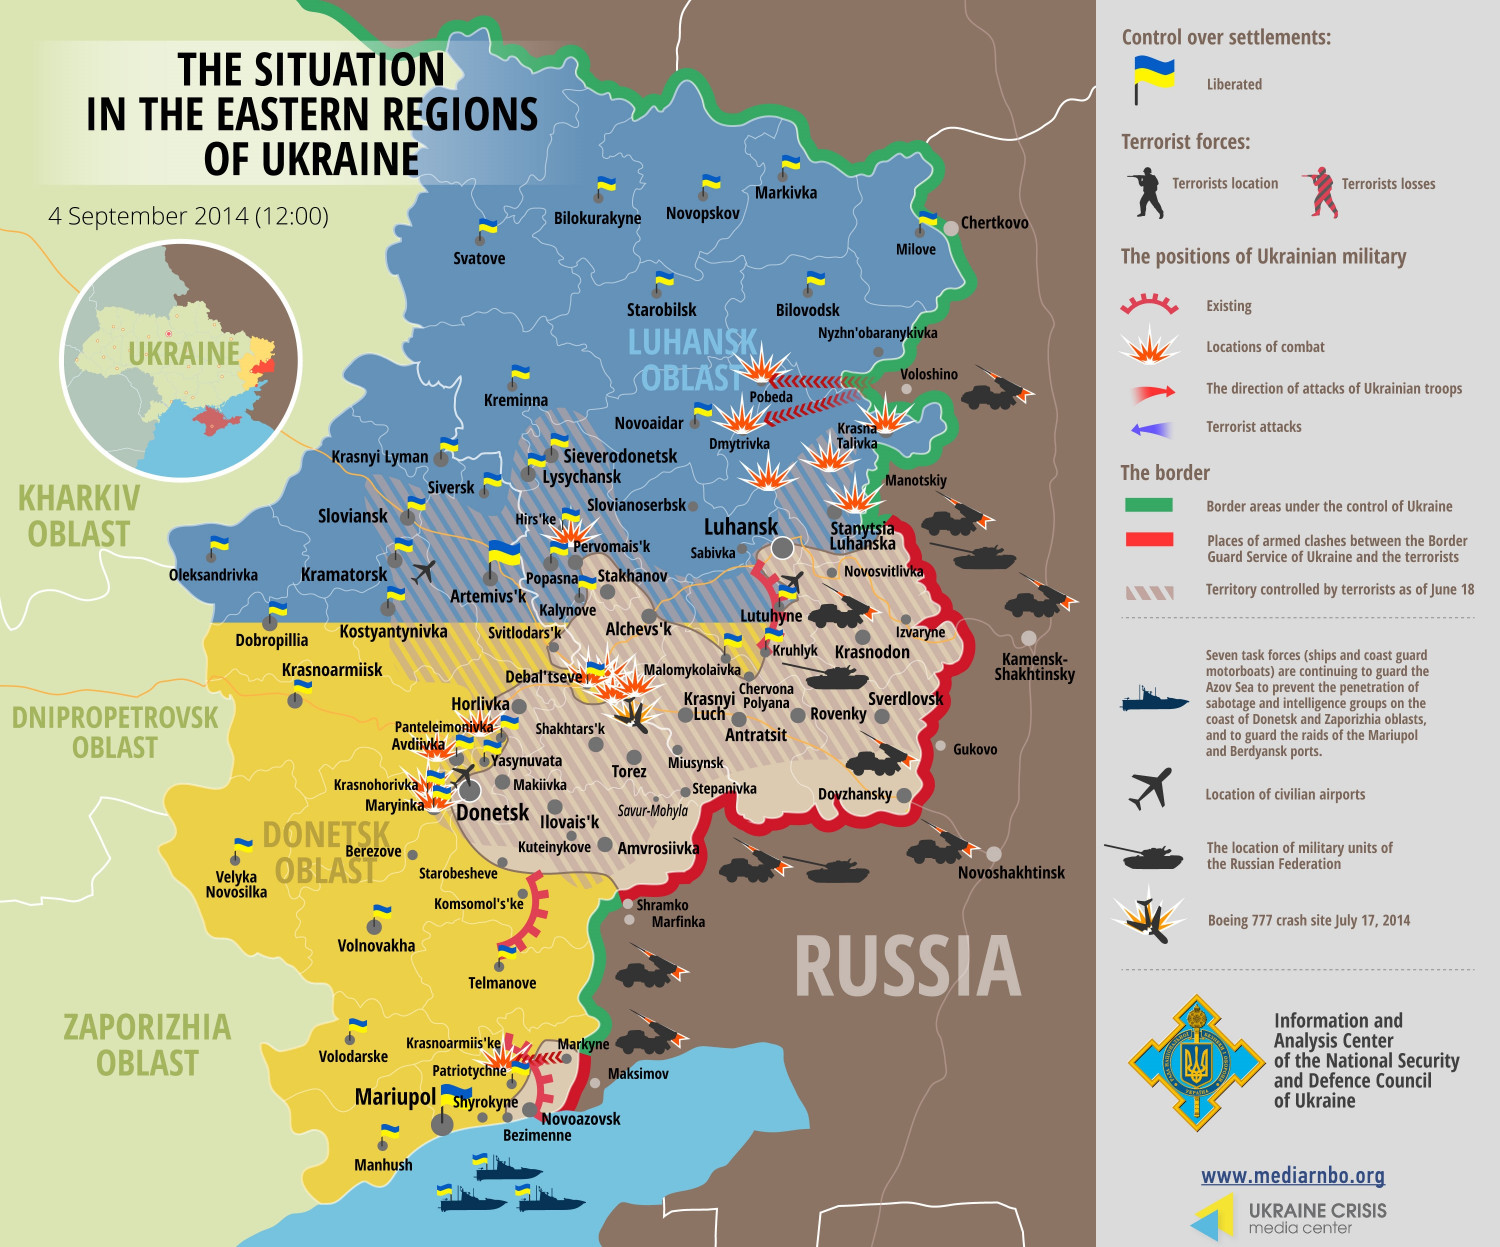 Situation in Eastern Regions of Ukraine, September 4 Infographic